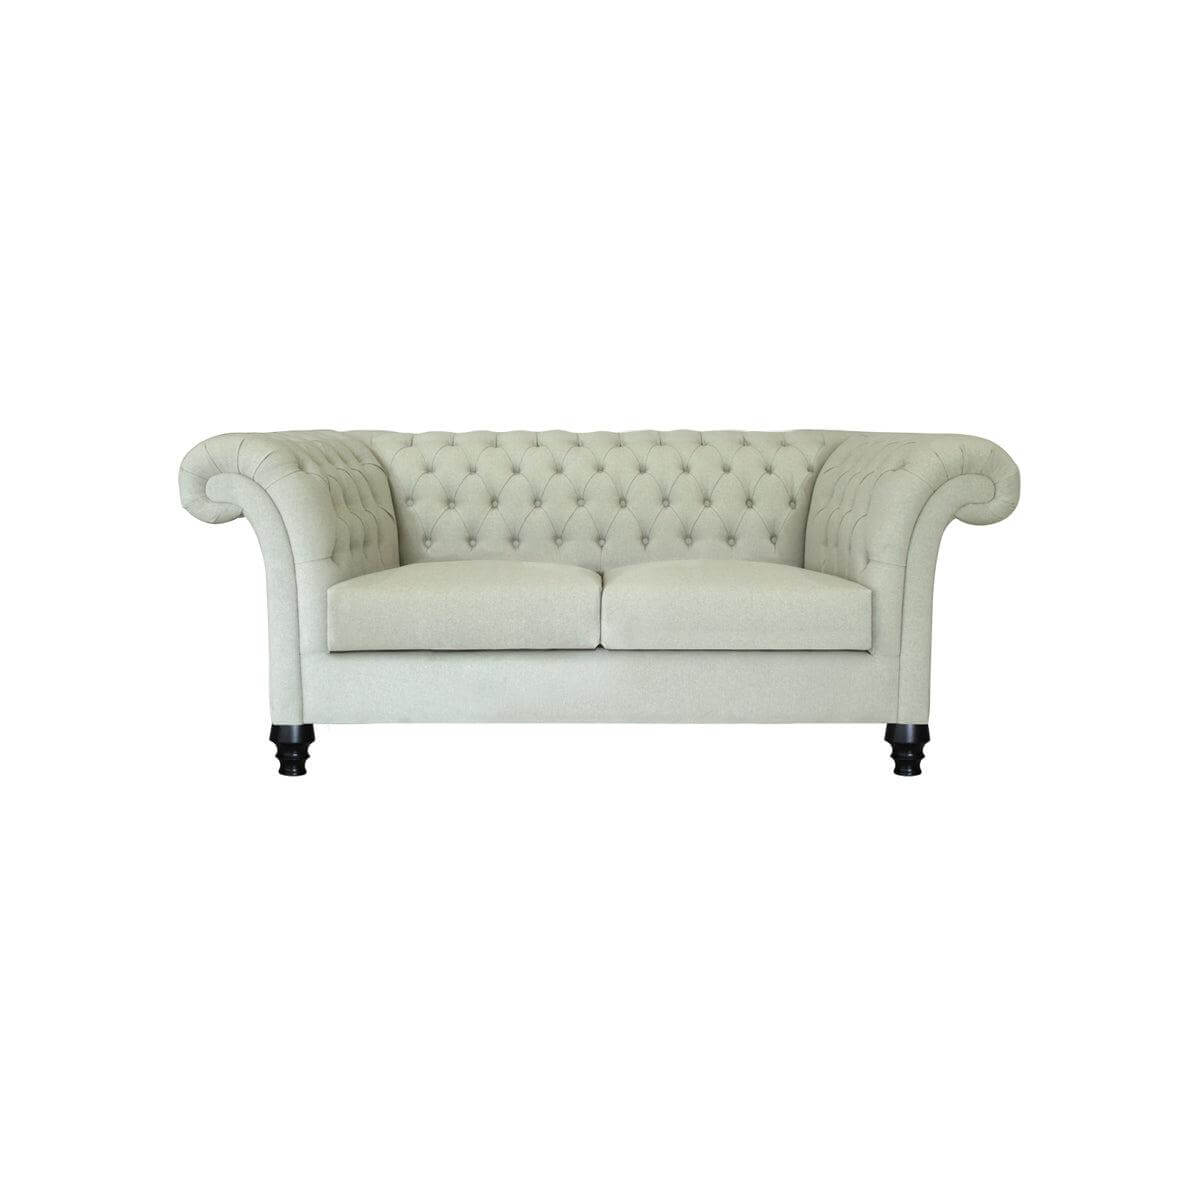 tufted two seat sofa with satin finished legs